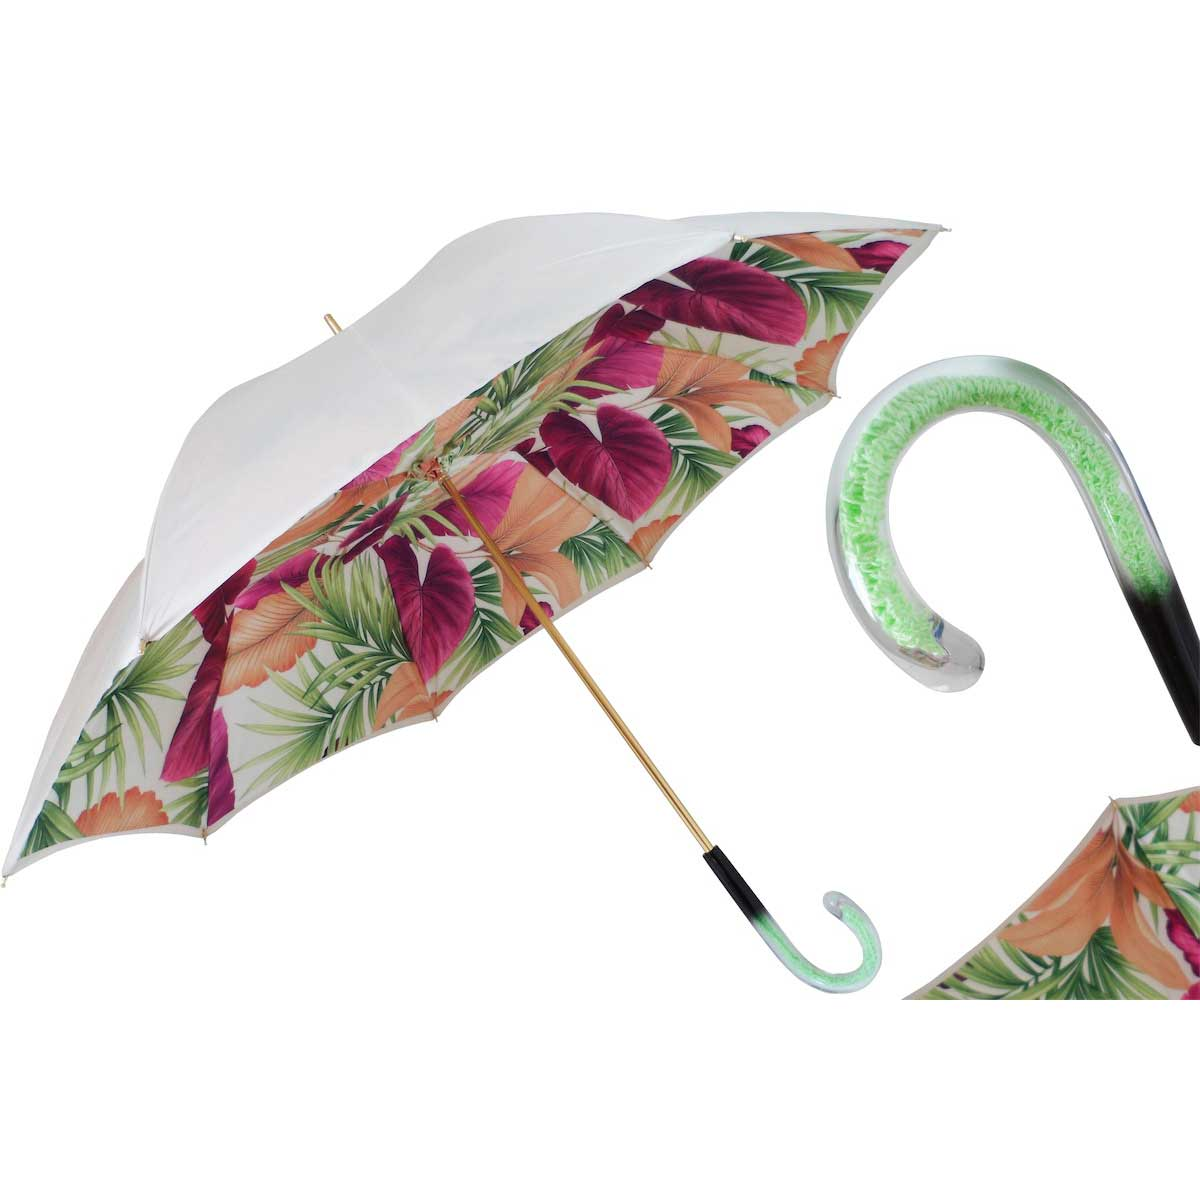 Pasotti White Summer Style Flowers Women's Umbrella